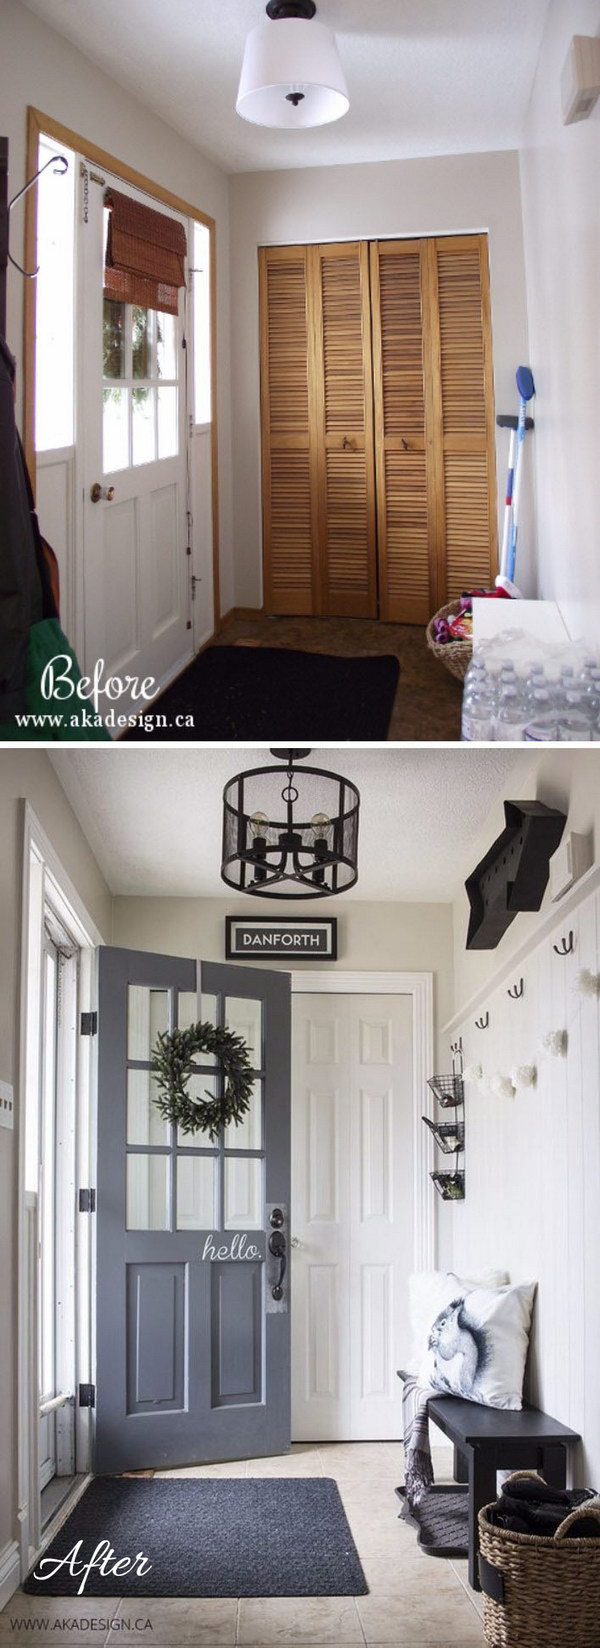 Awesome Black and White Entryway Makeover.